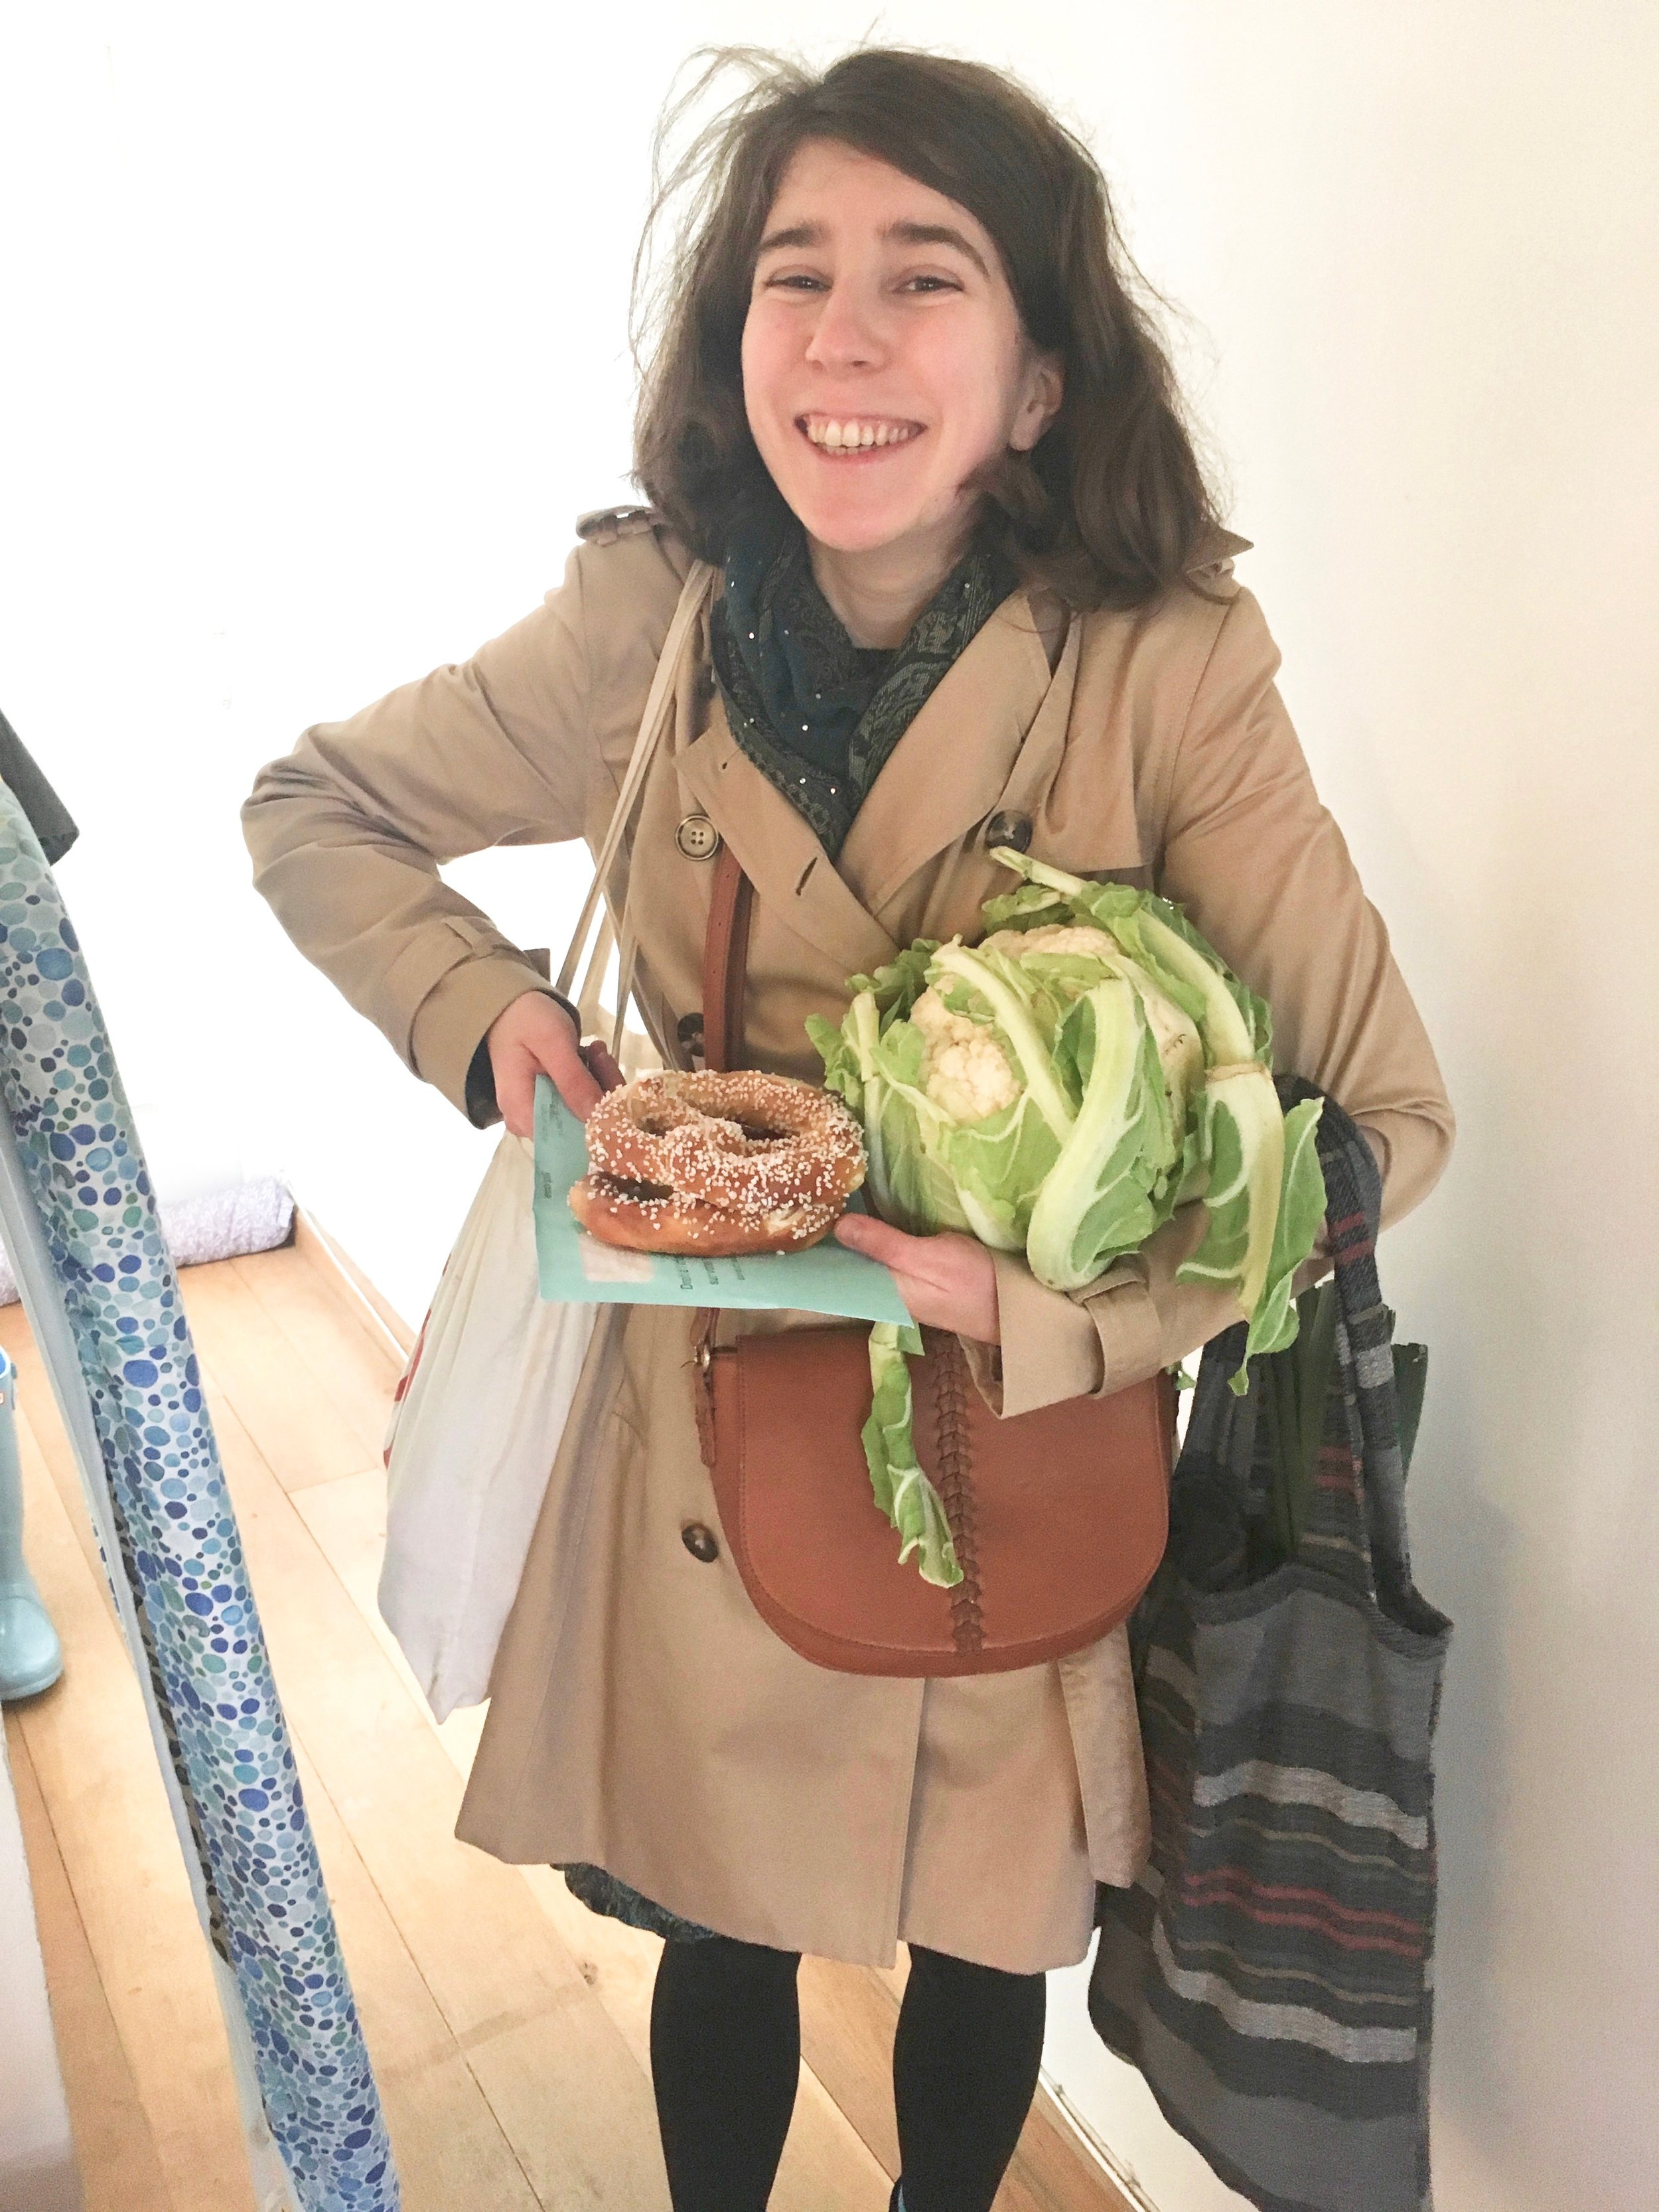 This is what zero waste often looks like around here: carrying a giant cauliflower under one arm, and using the post as a pretzel plate (try as we might, our 'paperless banking' sends us each at least one letter a month).